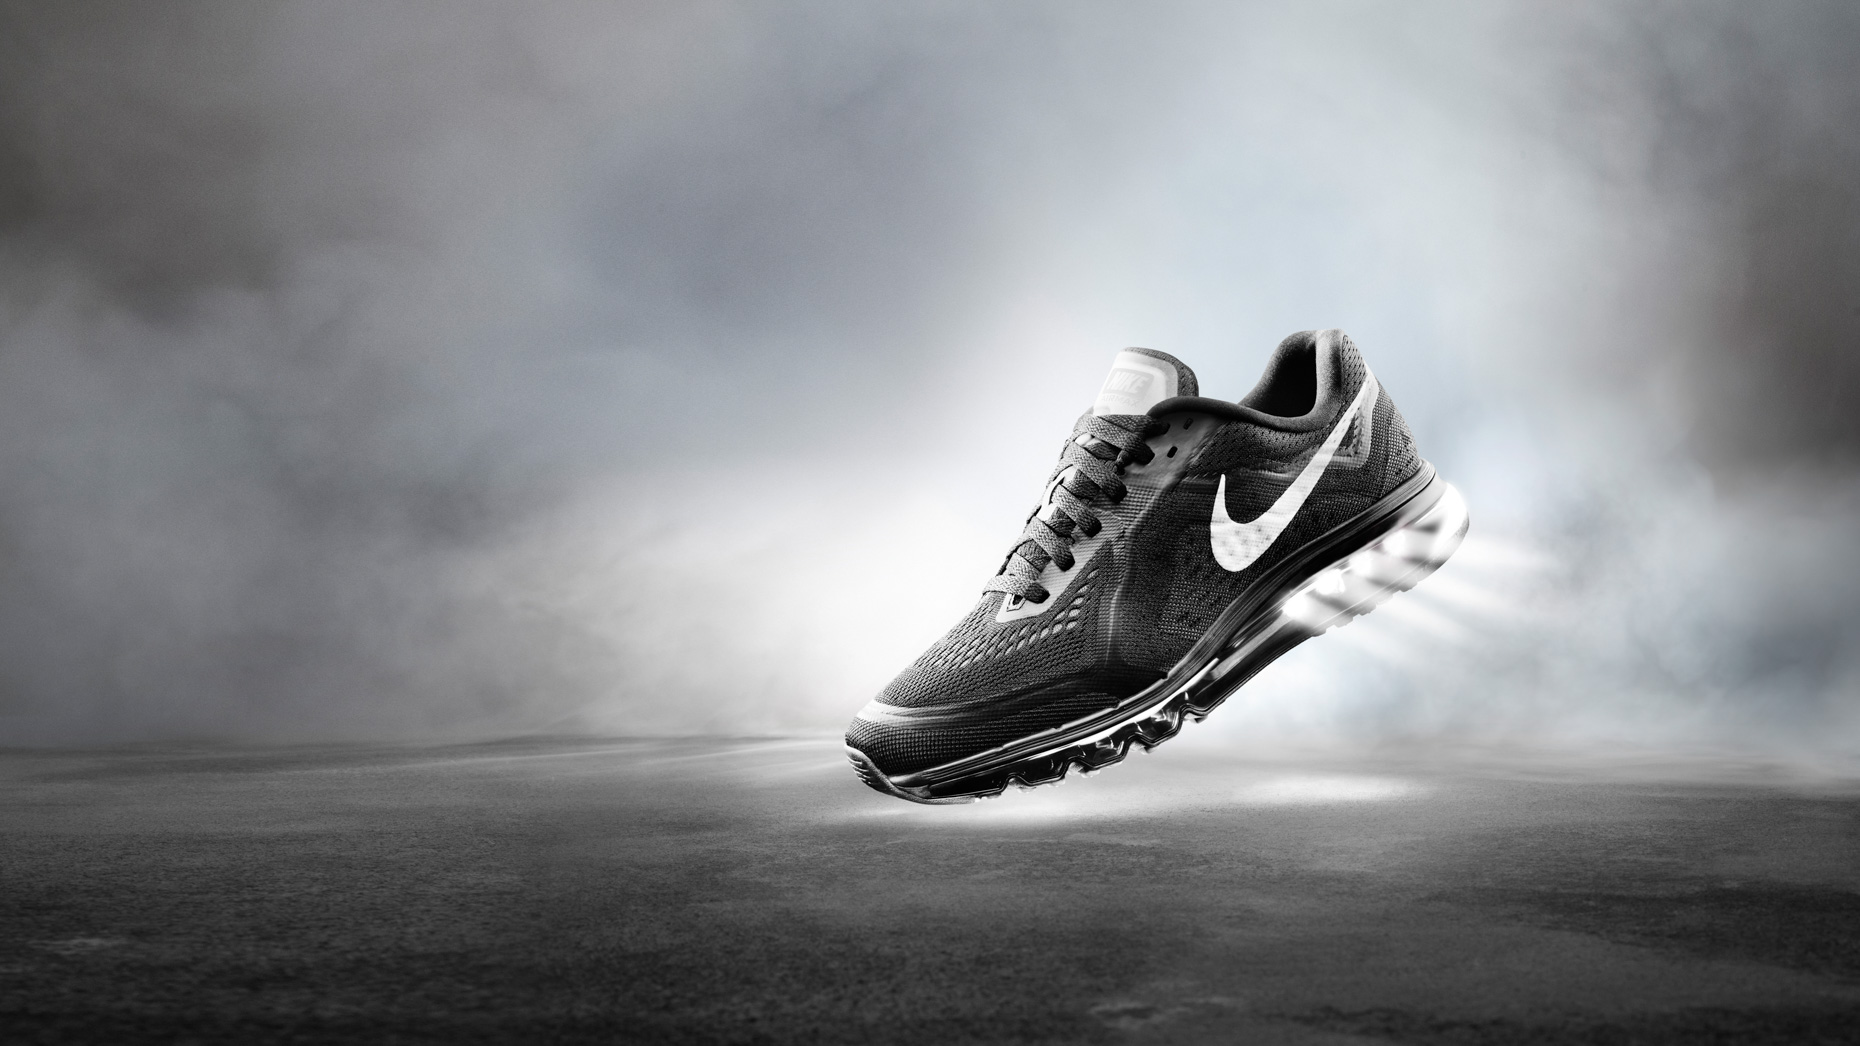 Ho13_AirMax_2014_M_Toe_full